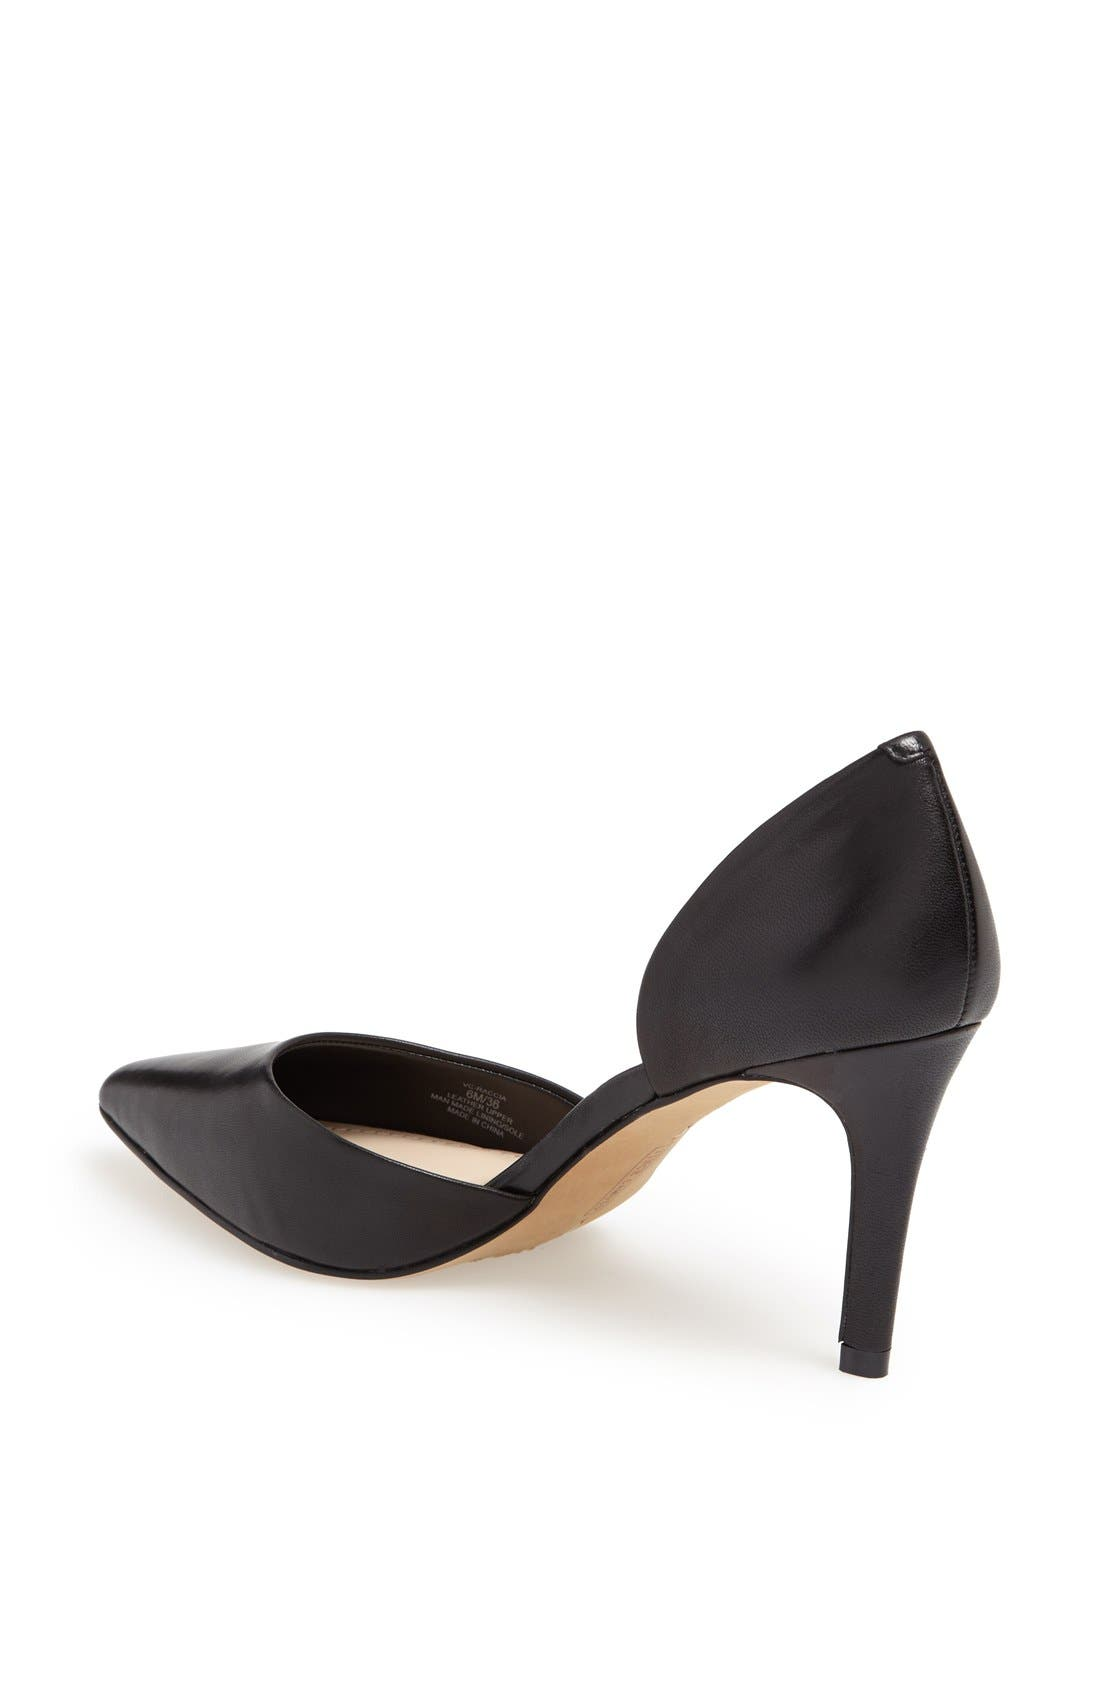 'Raccia' Pointy Toe d'Orsay Pump,                             Alternate thumbnail 2, color,                             001